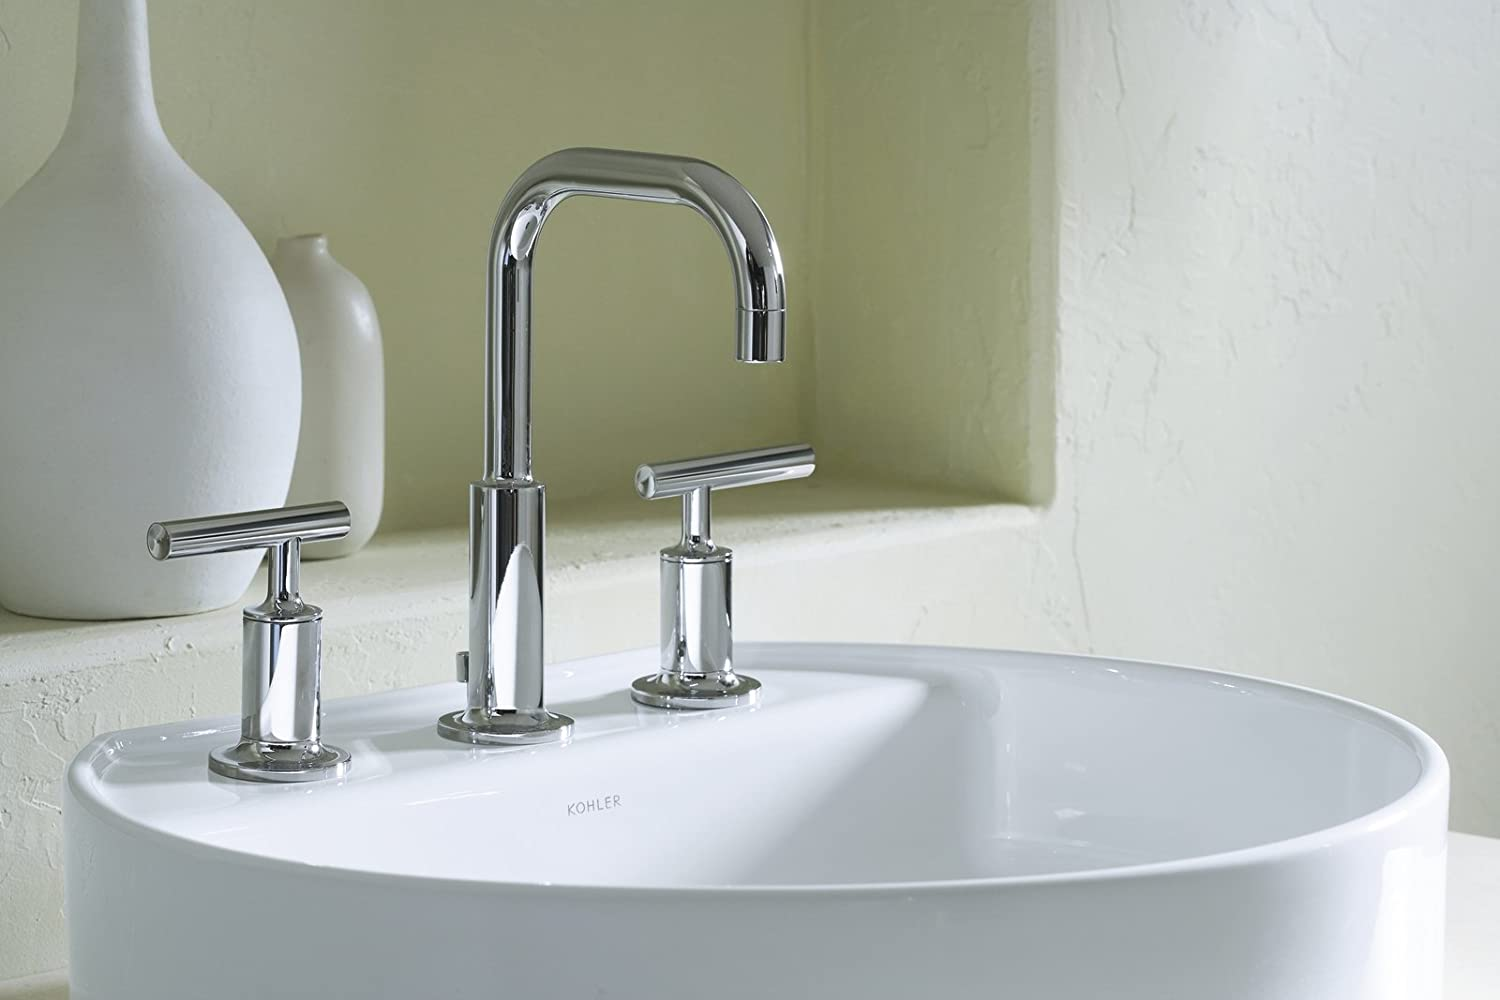 KOHLER K-14406-4-CP Purist Widespread Lavatory Faucet, Polished Chrome -  Touch On Bathroom Sink Faucets - Amazon.com